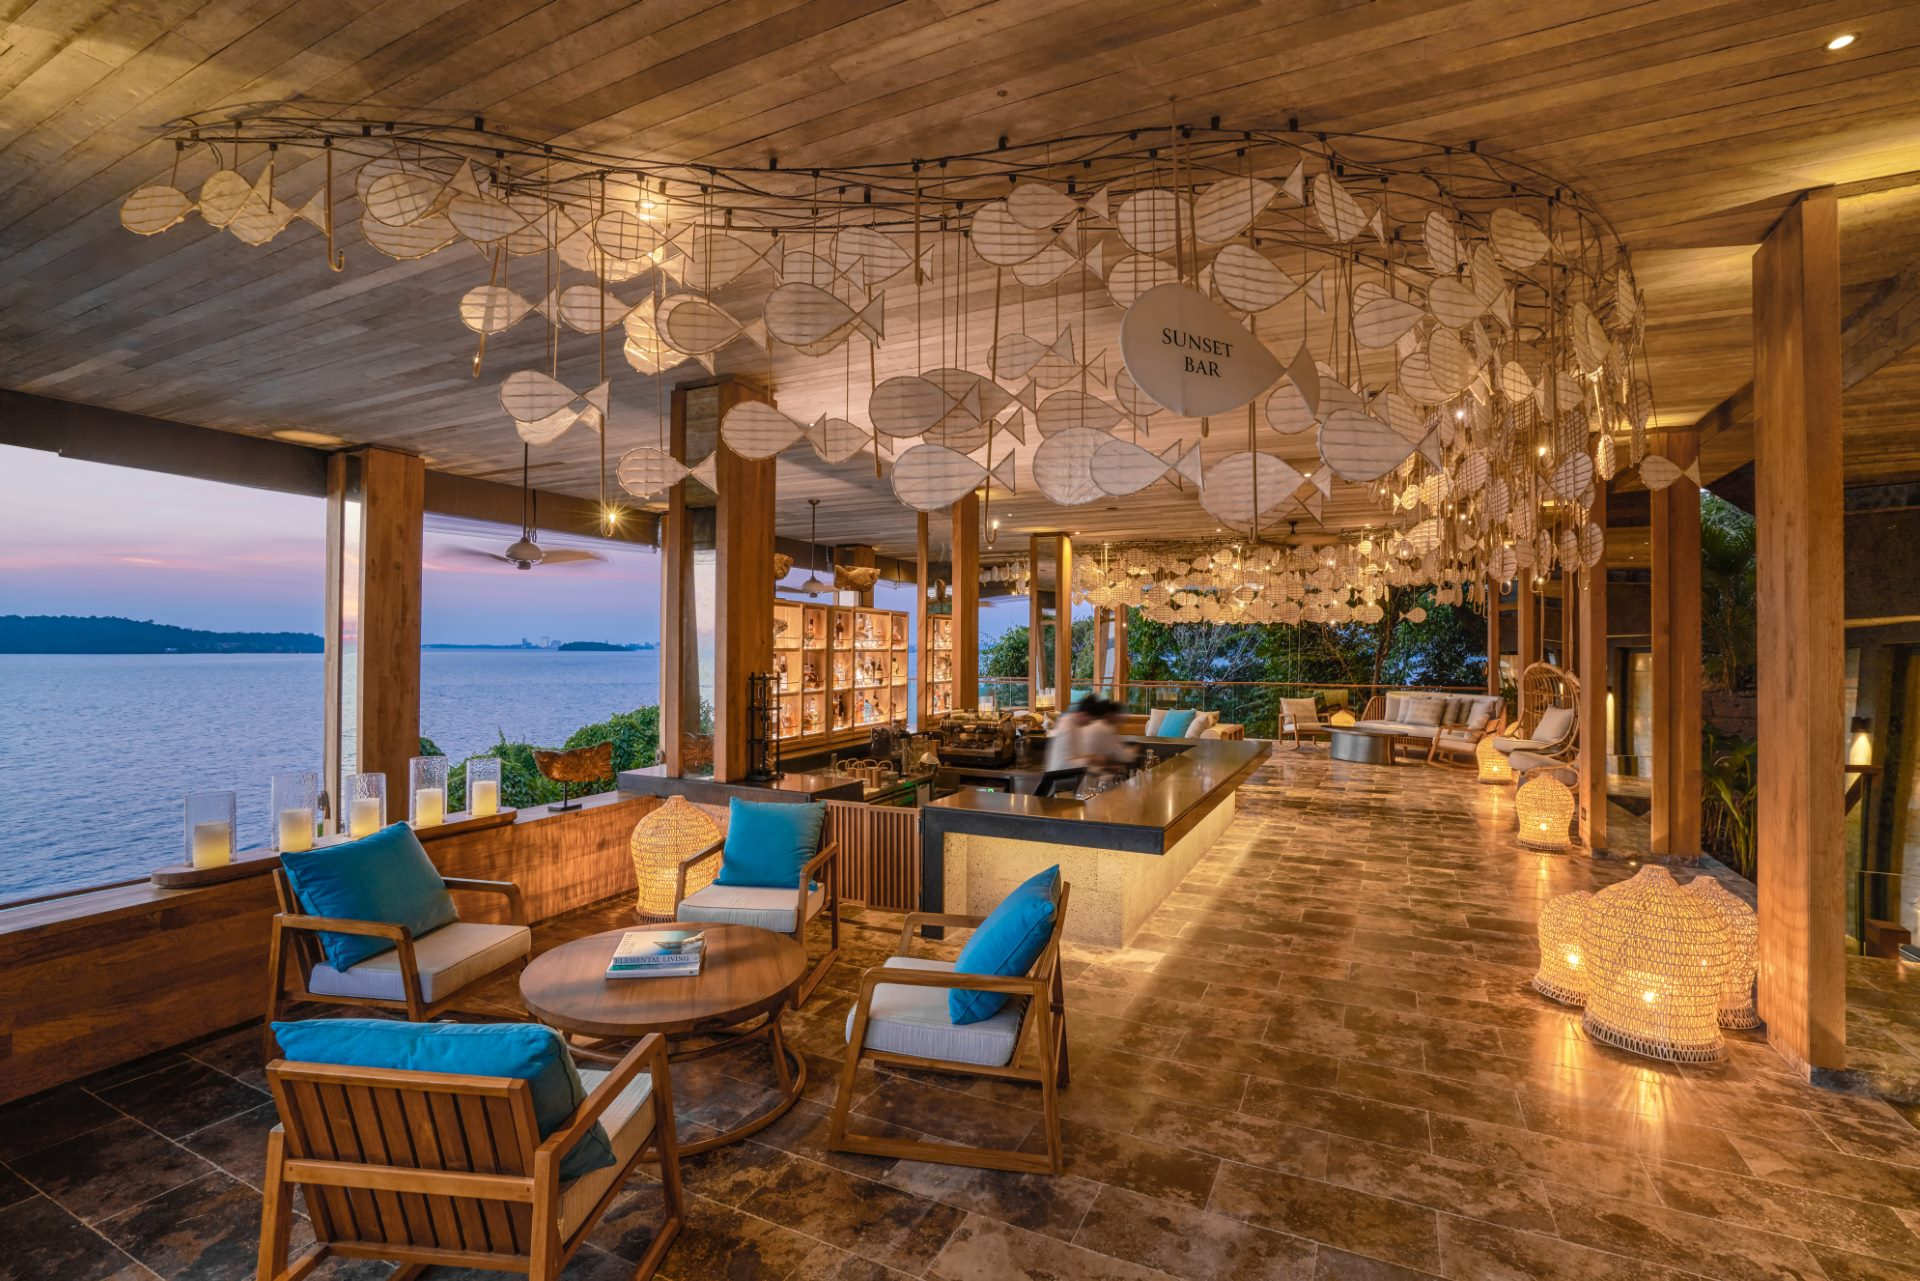 Sunset Bar en Six Senses Krabey Island